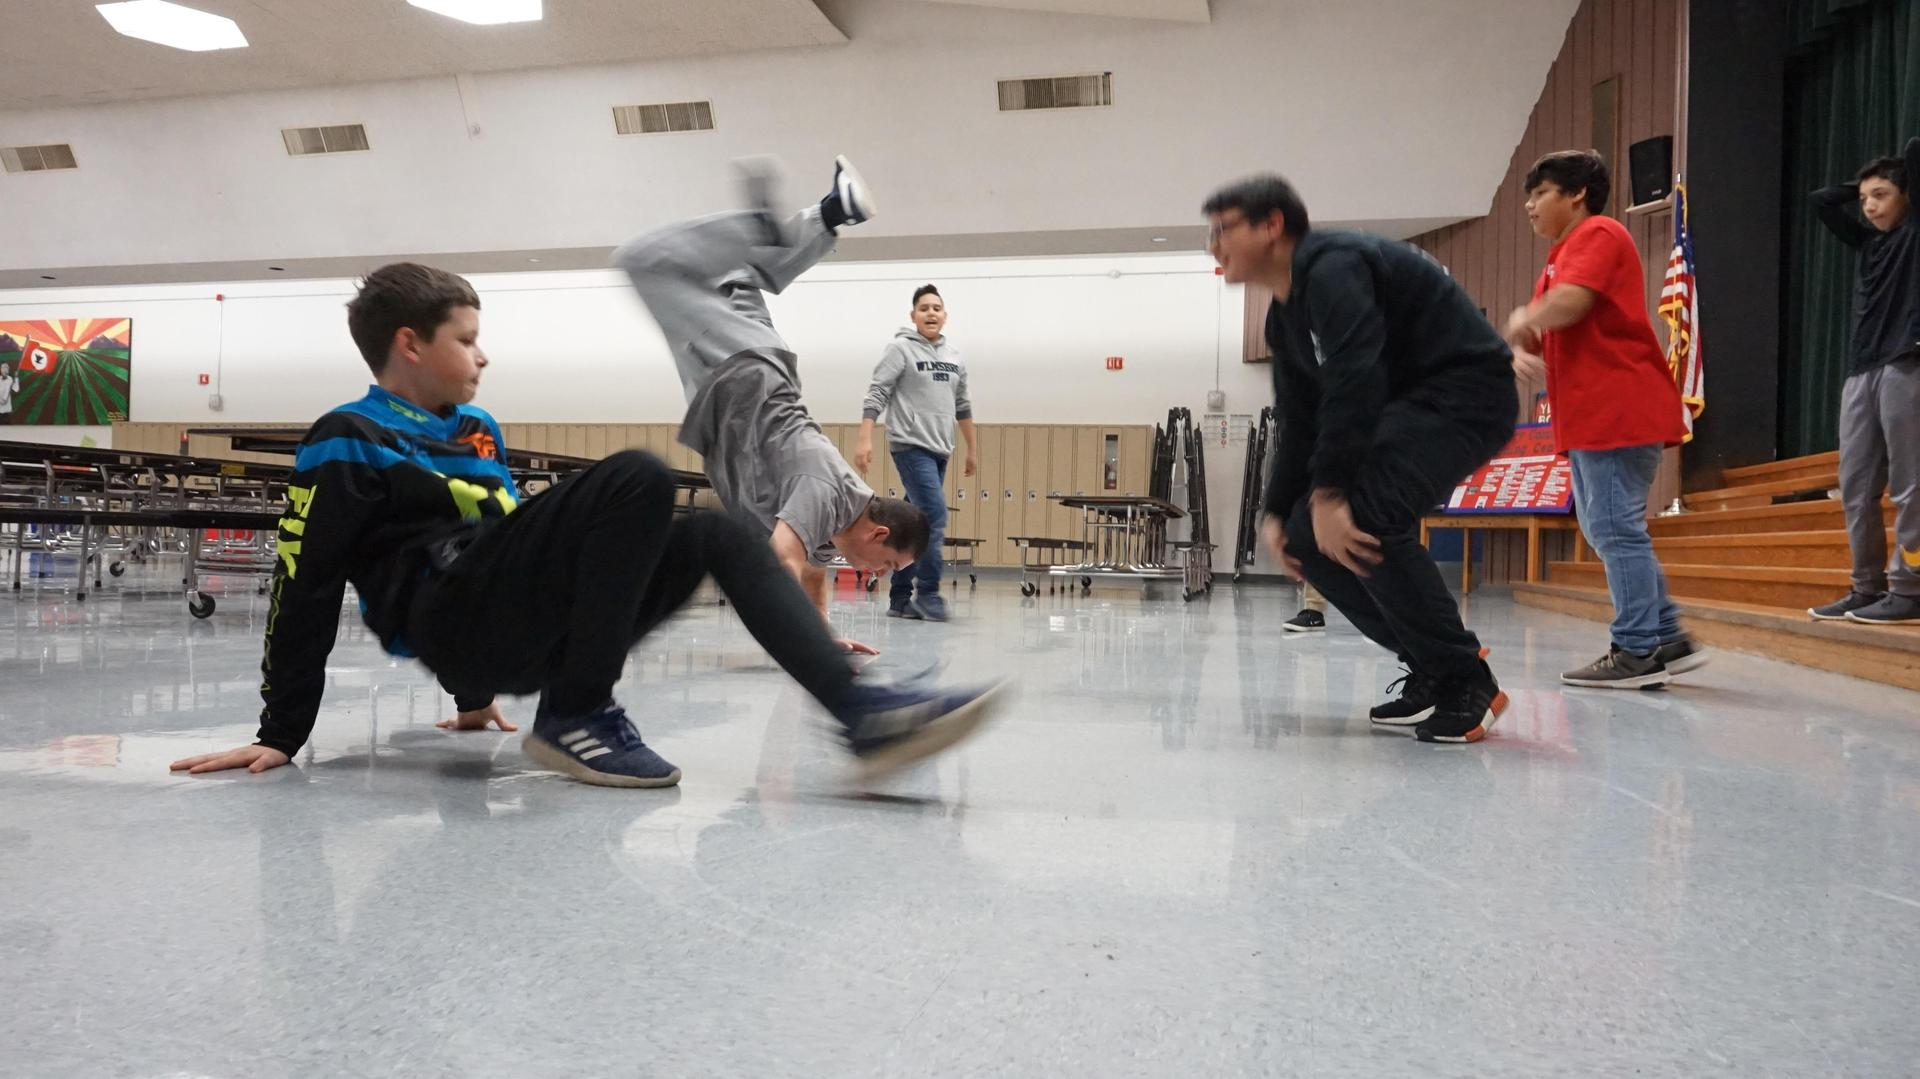 Several students practicing their dancing